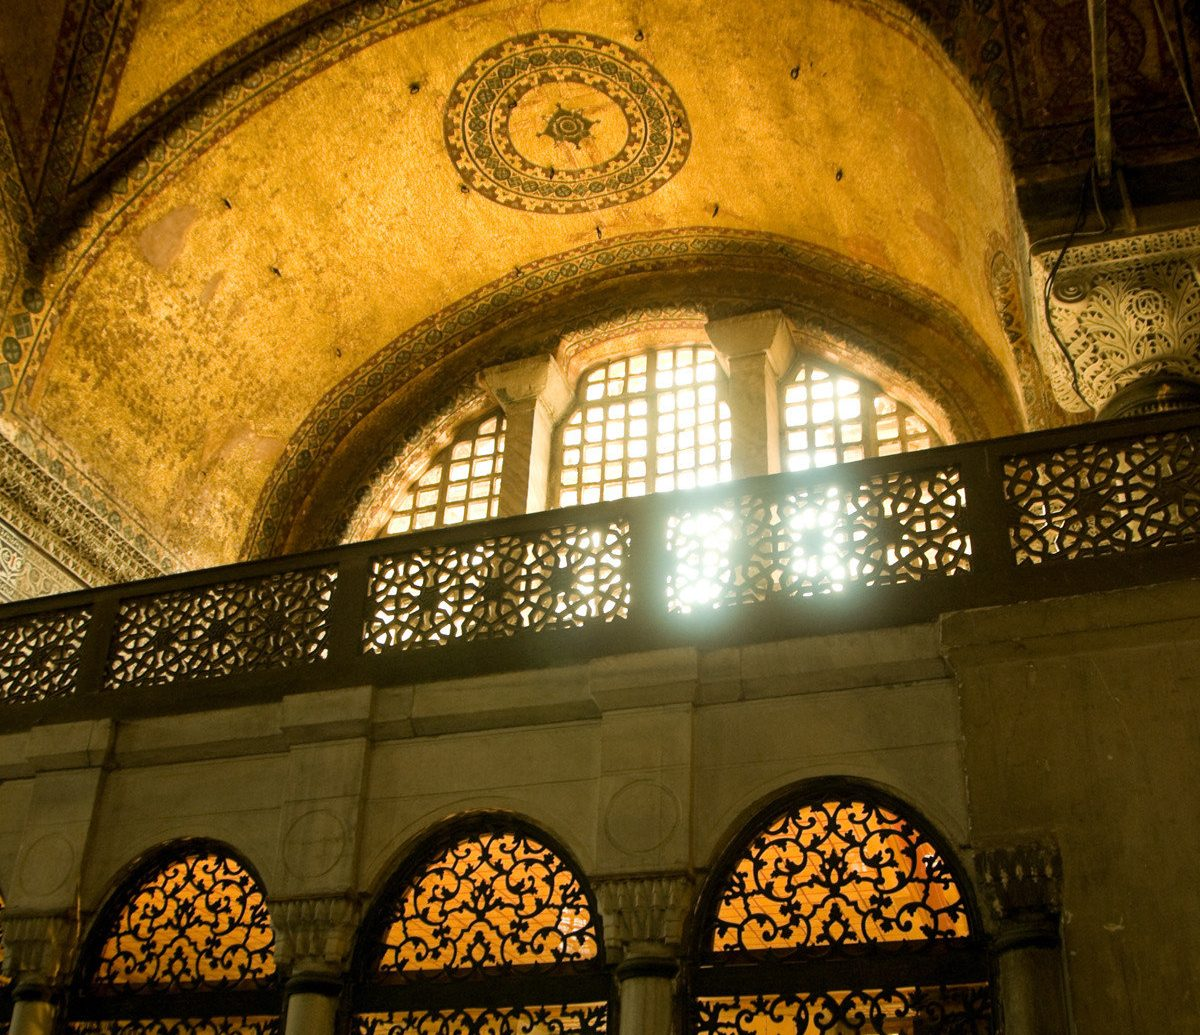 Trip Ideas building indoor Architecture place of worship mosque window glass cathedral ancient history symmetry chapel temple Church stained glass synagogue subway